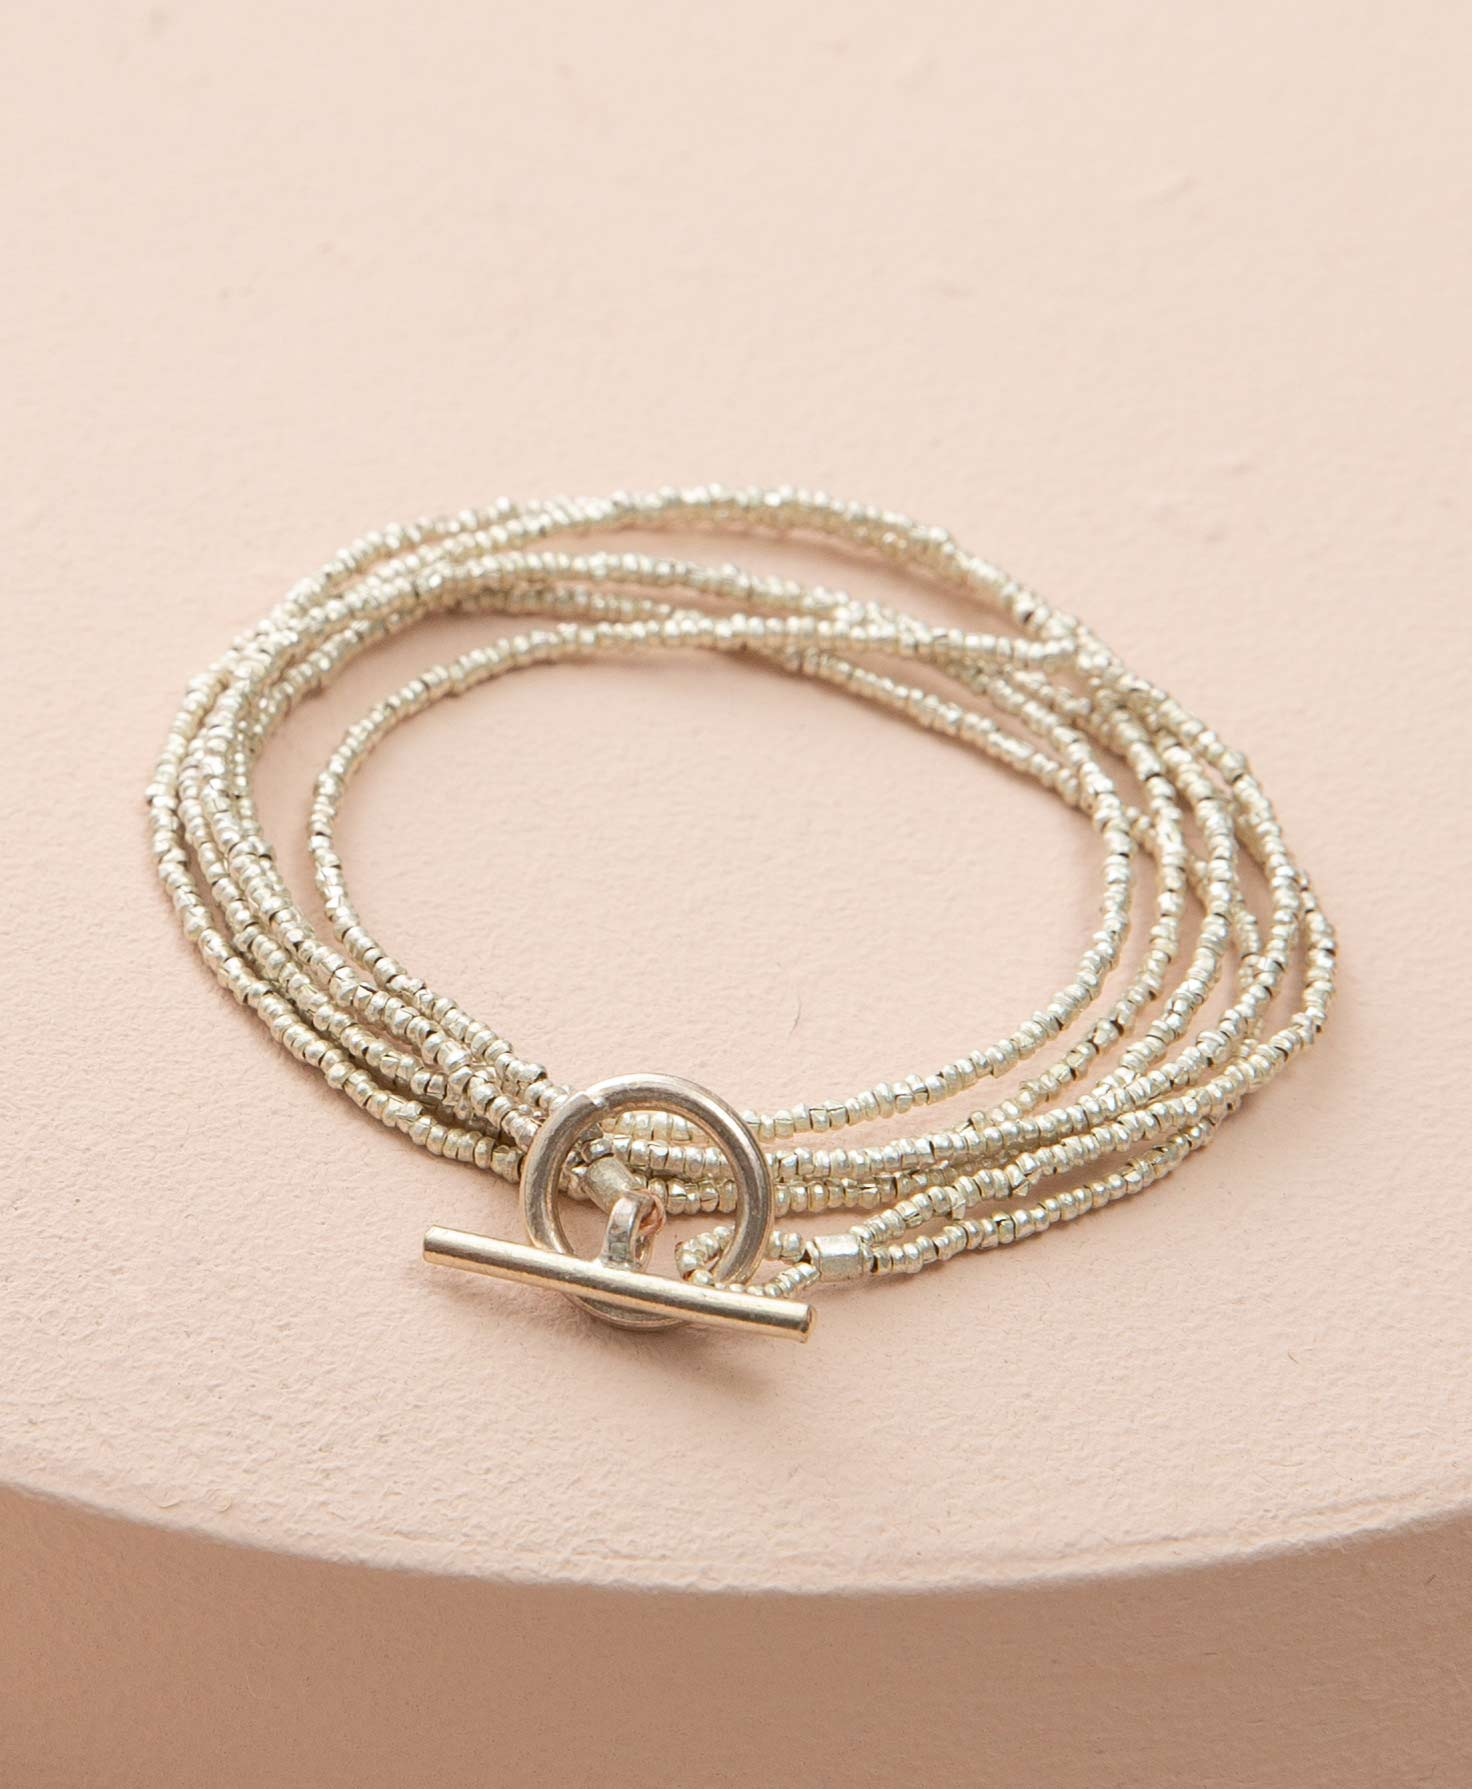 The Bichena Bracelet lays coiled on a peach-colored block. It is a wrap style bracelet composed of strands of tiny silver metal beads. The strands wrap around multiple times for a dainty layered look. They end in a lariat-style closure, with a silver bar that slides through a silver loop to secure the bracelet.